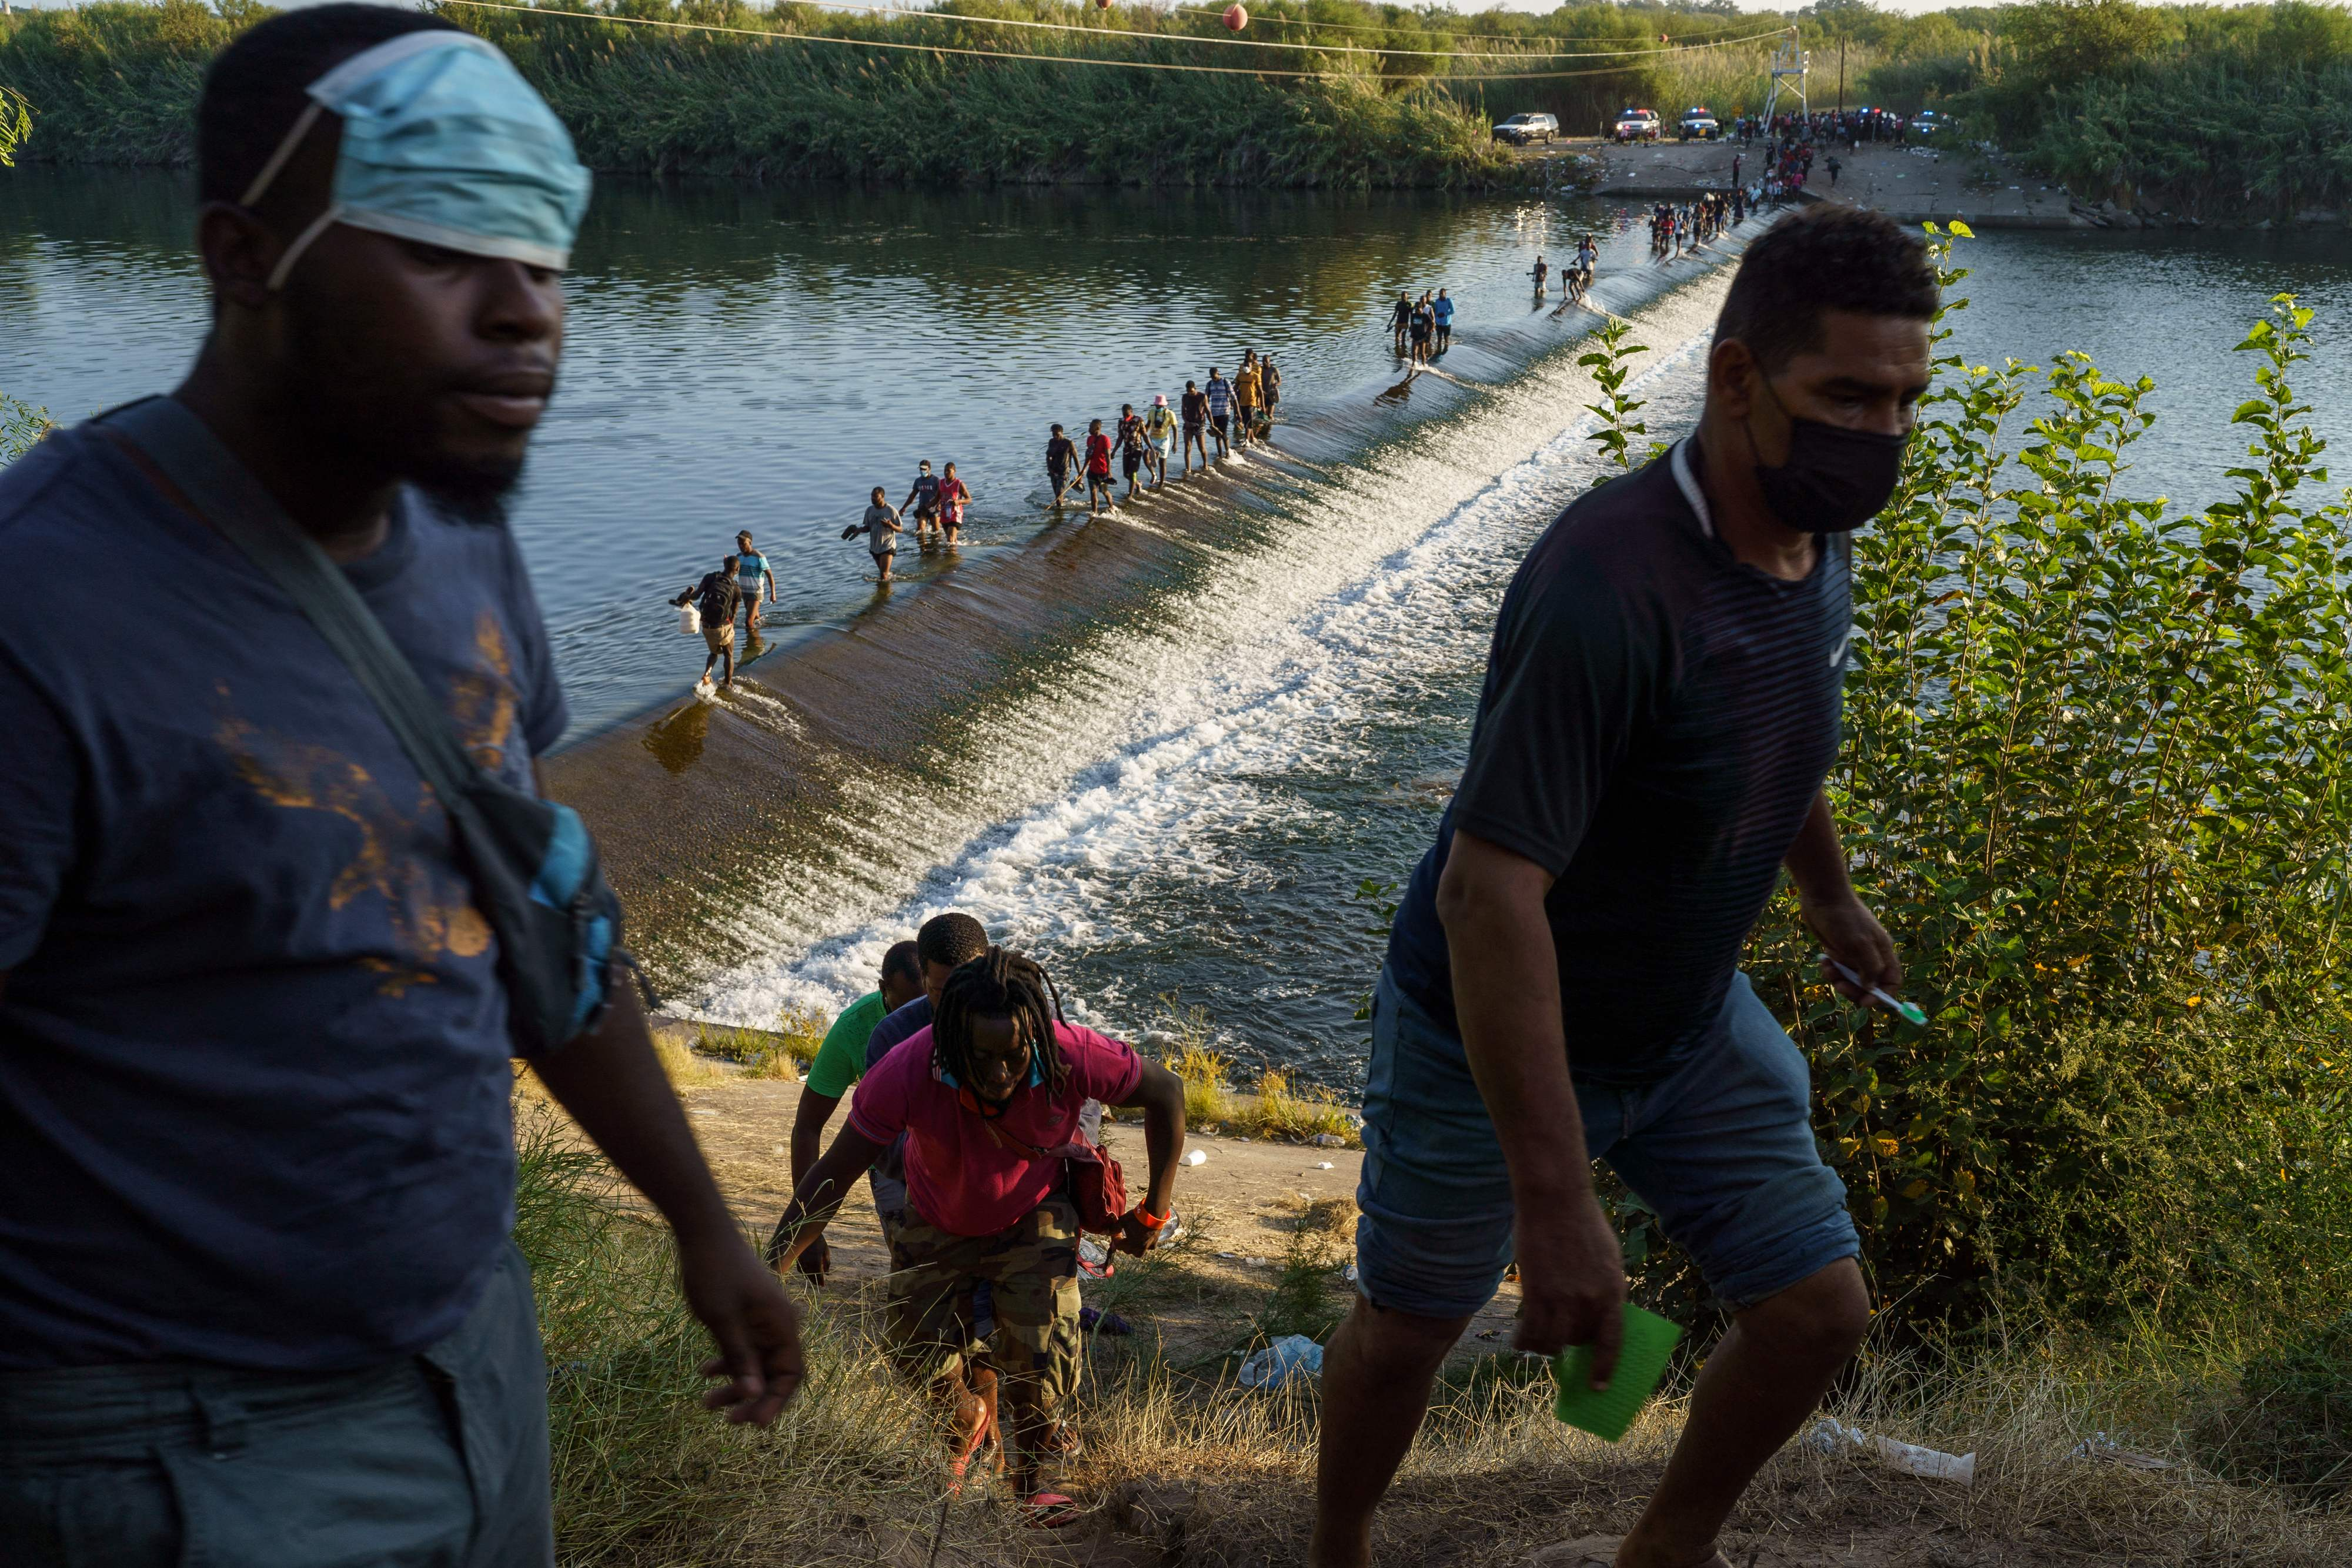 600 more Homeland Security agents sent to Del Rio, Texas, amid Haitian migrant crisis: What we know